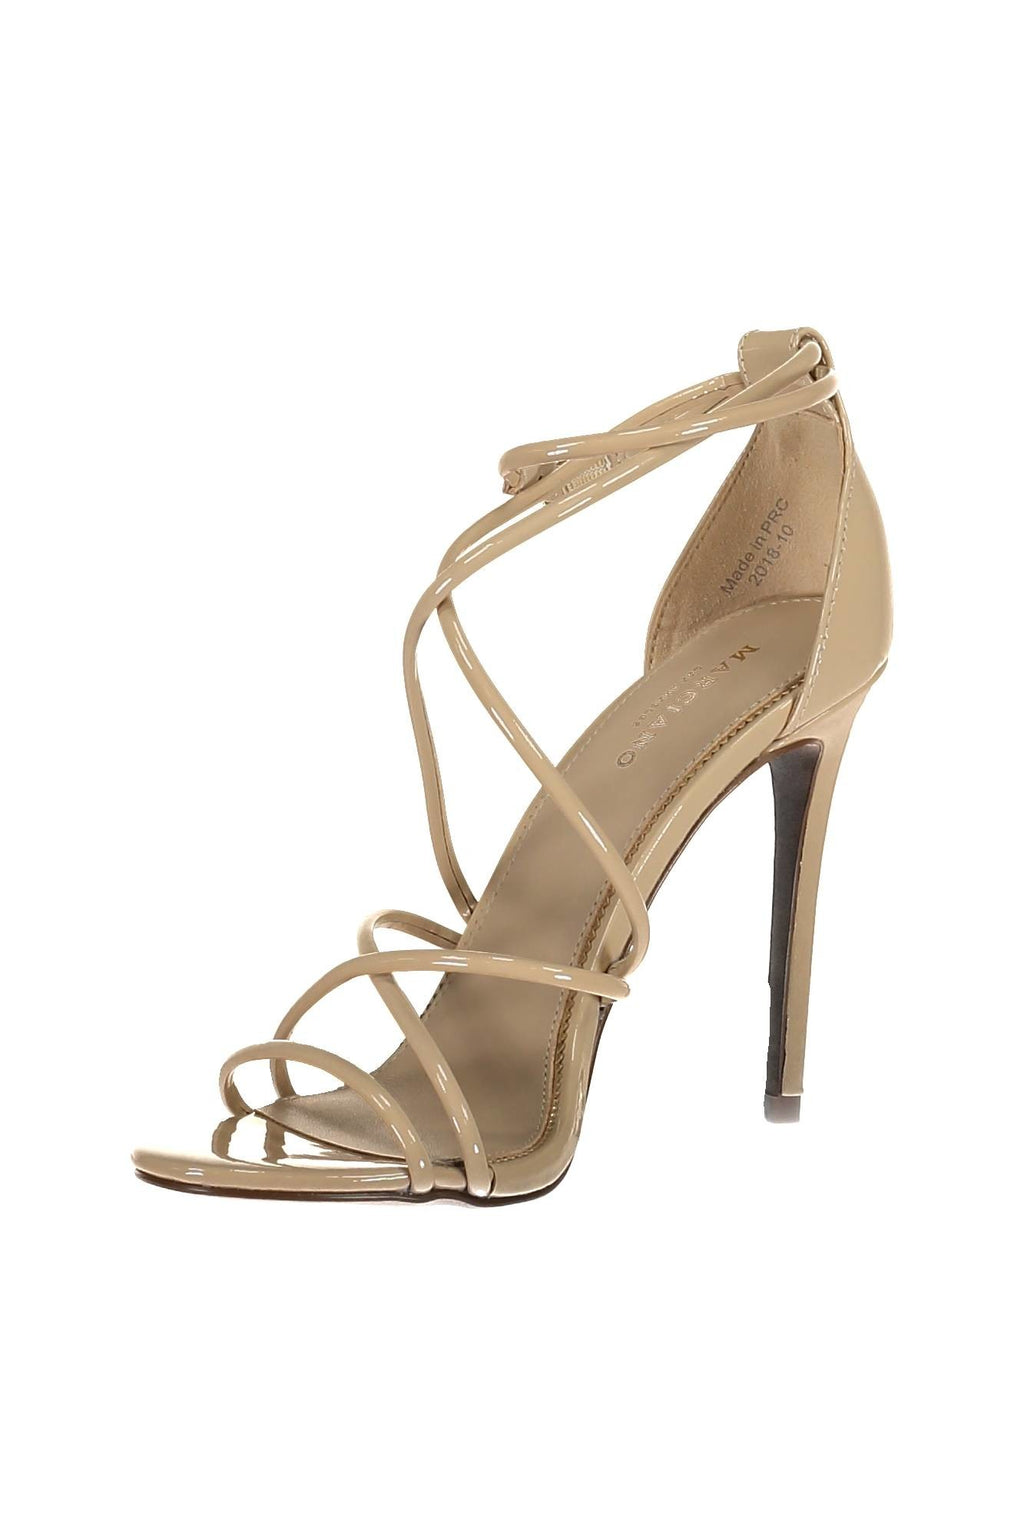 Guess Marciano Woman Shoes